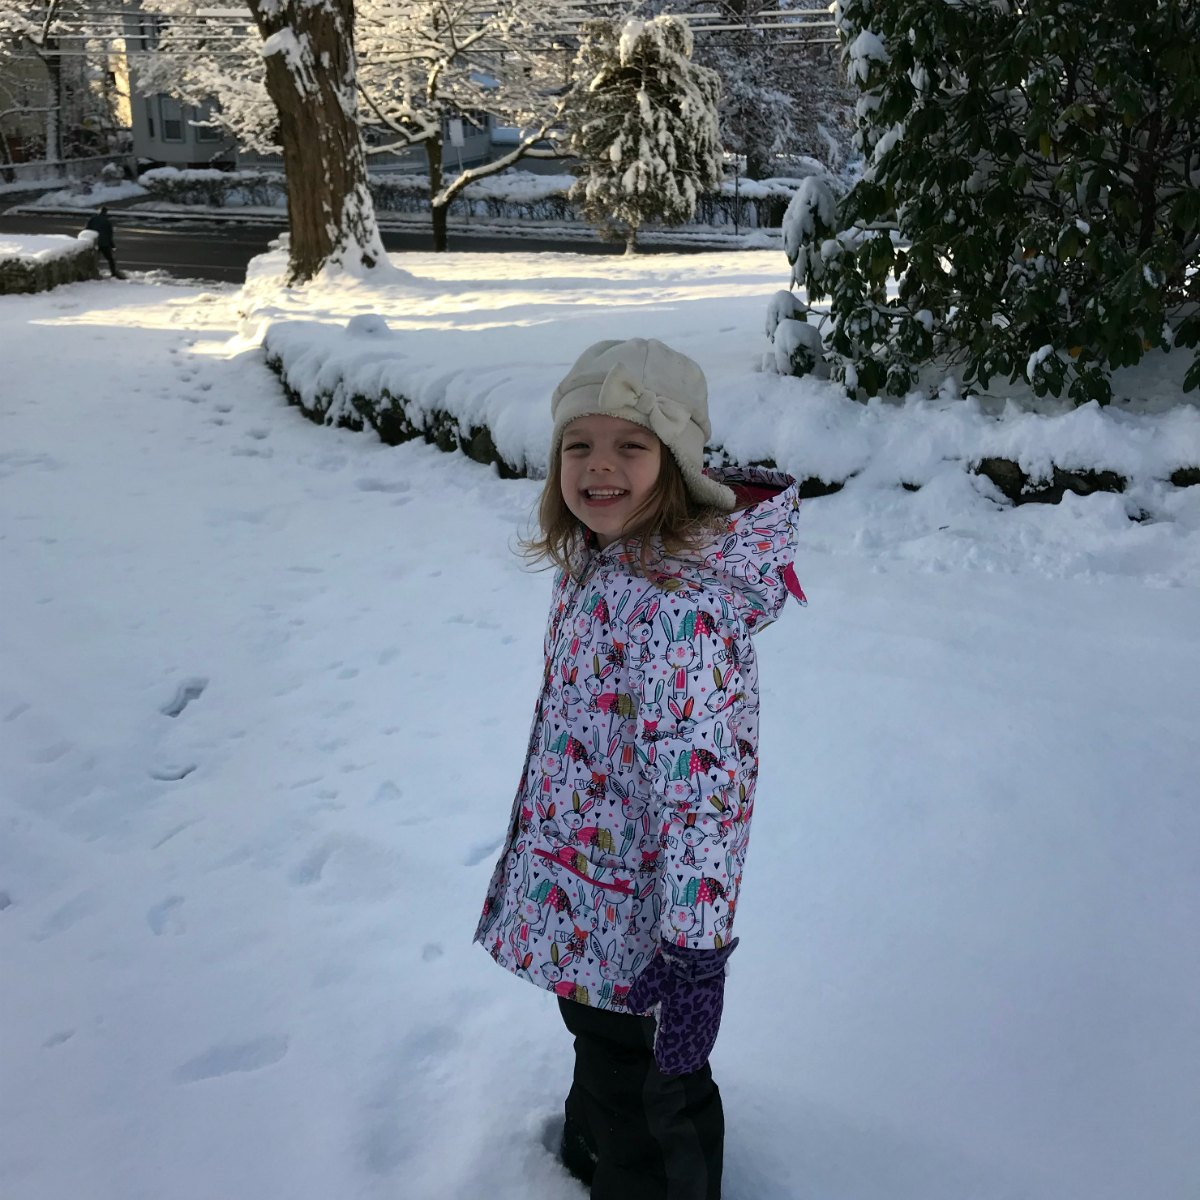 Snapshots from the snow 7